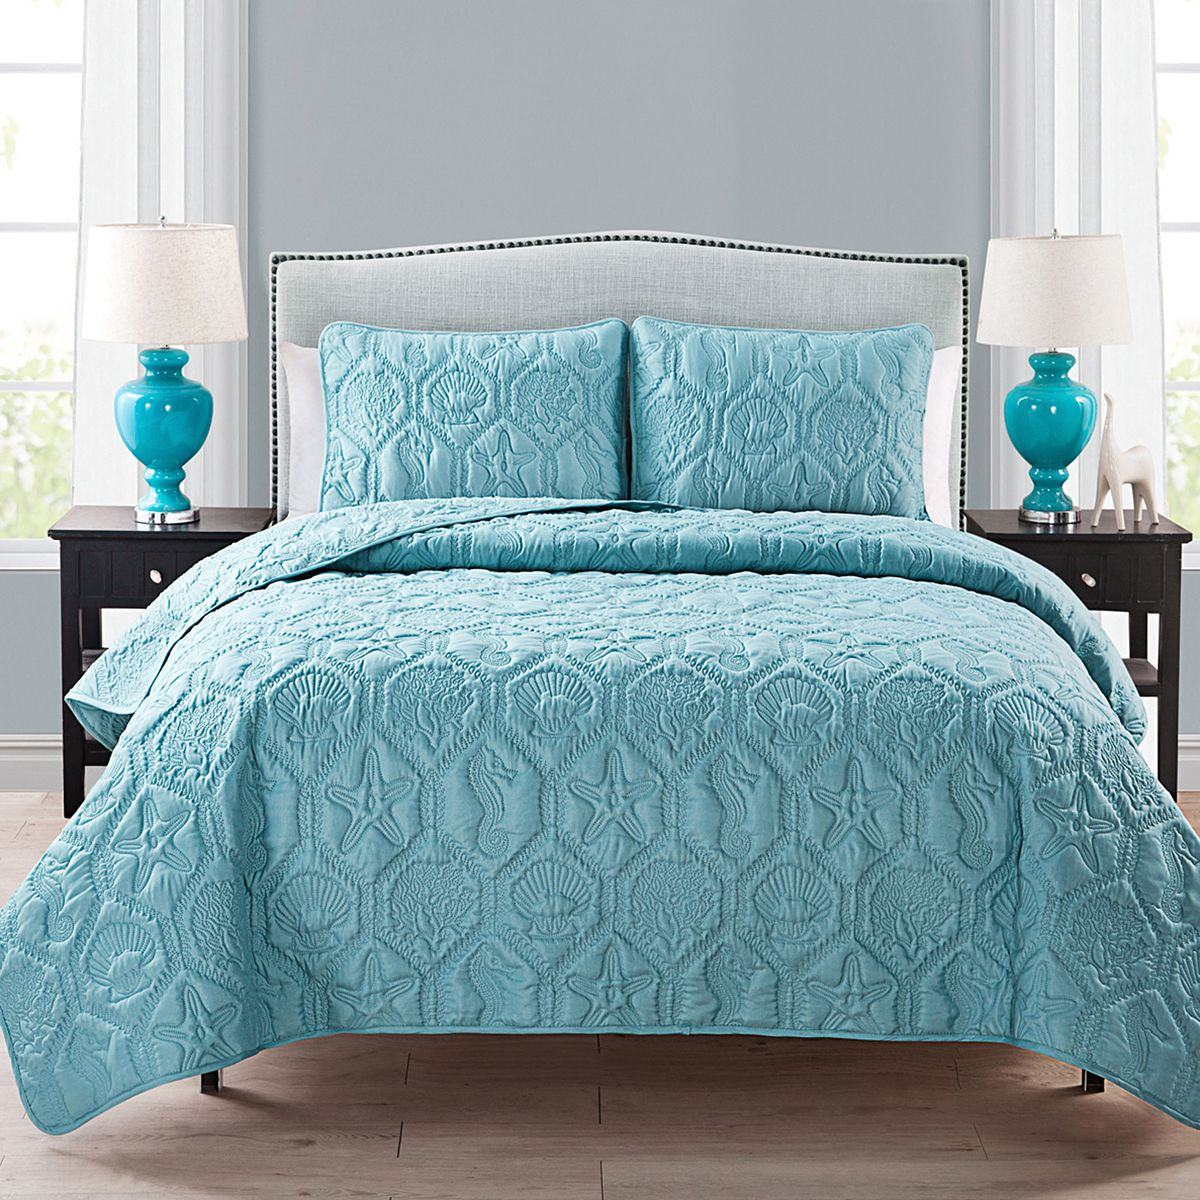 The Queen Size VCNY Home Shore Quilt Sets  $28.49